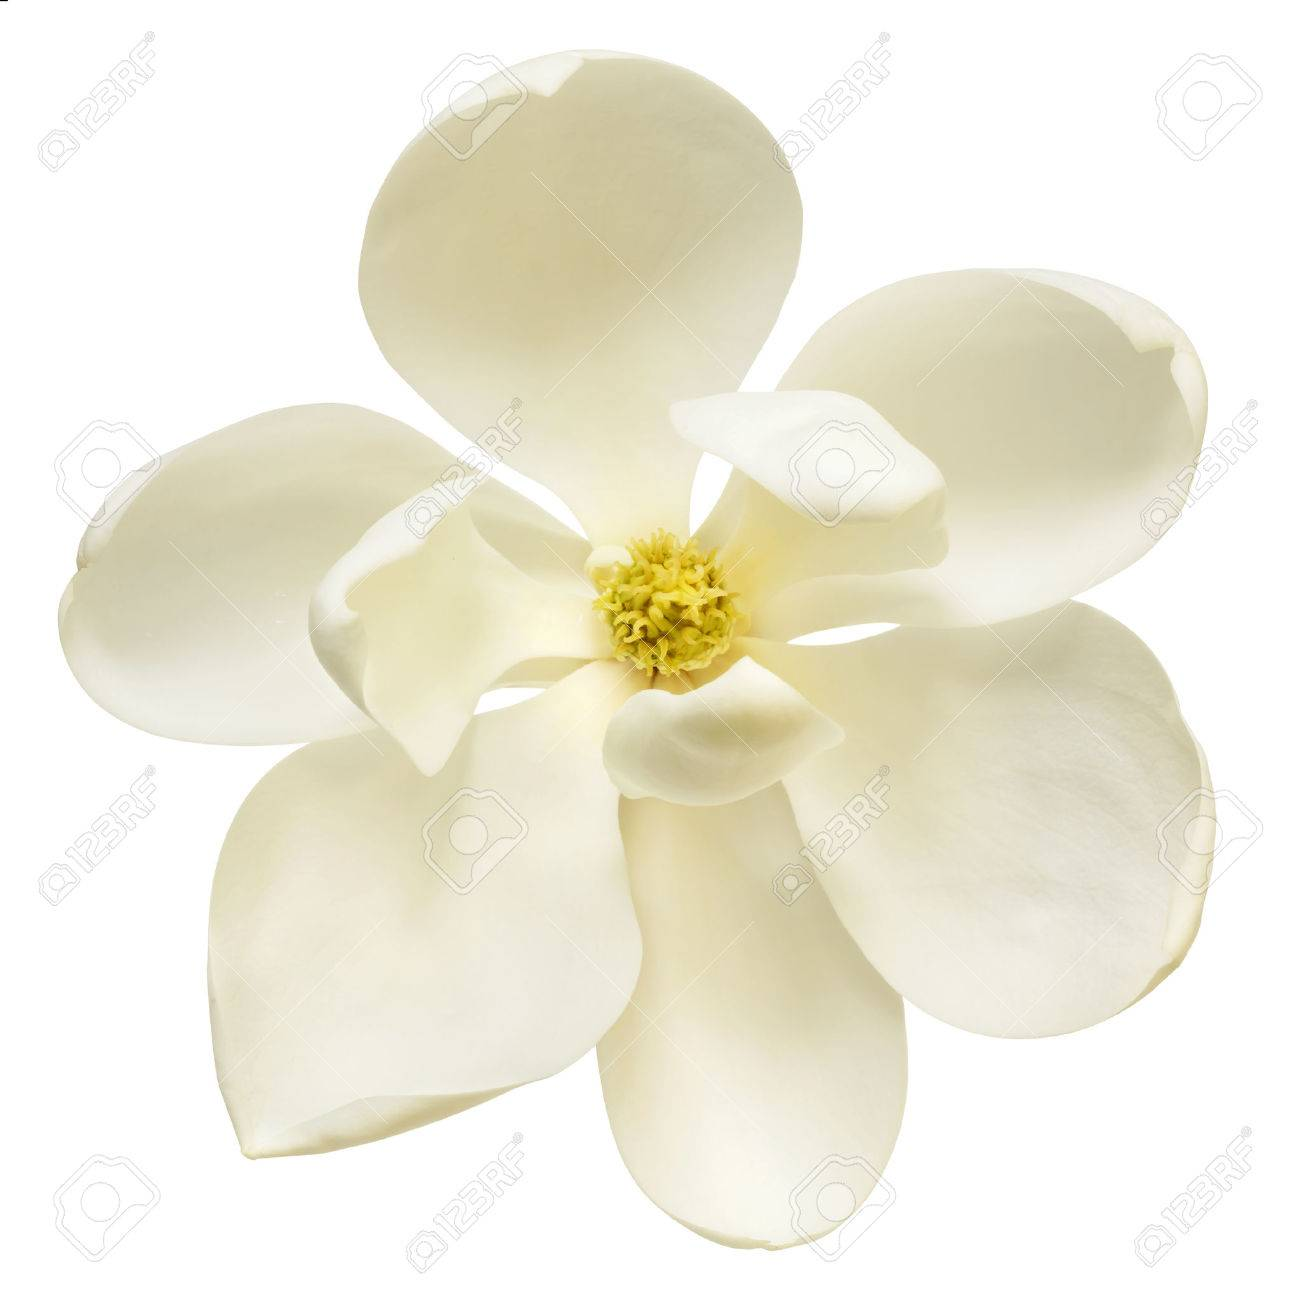 White Magnolia Flower Isolated Top View Stock Photo Picture And